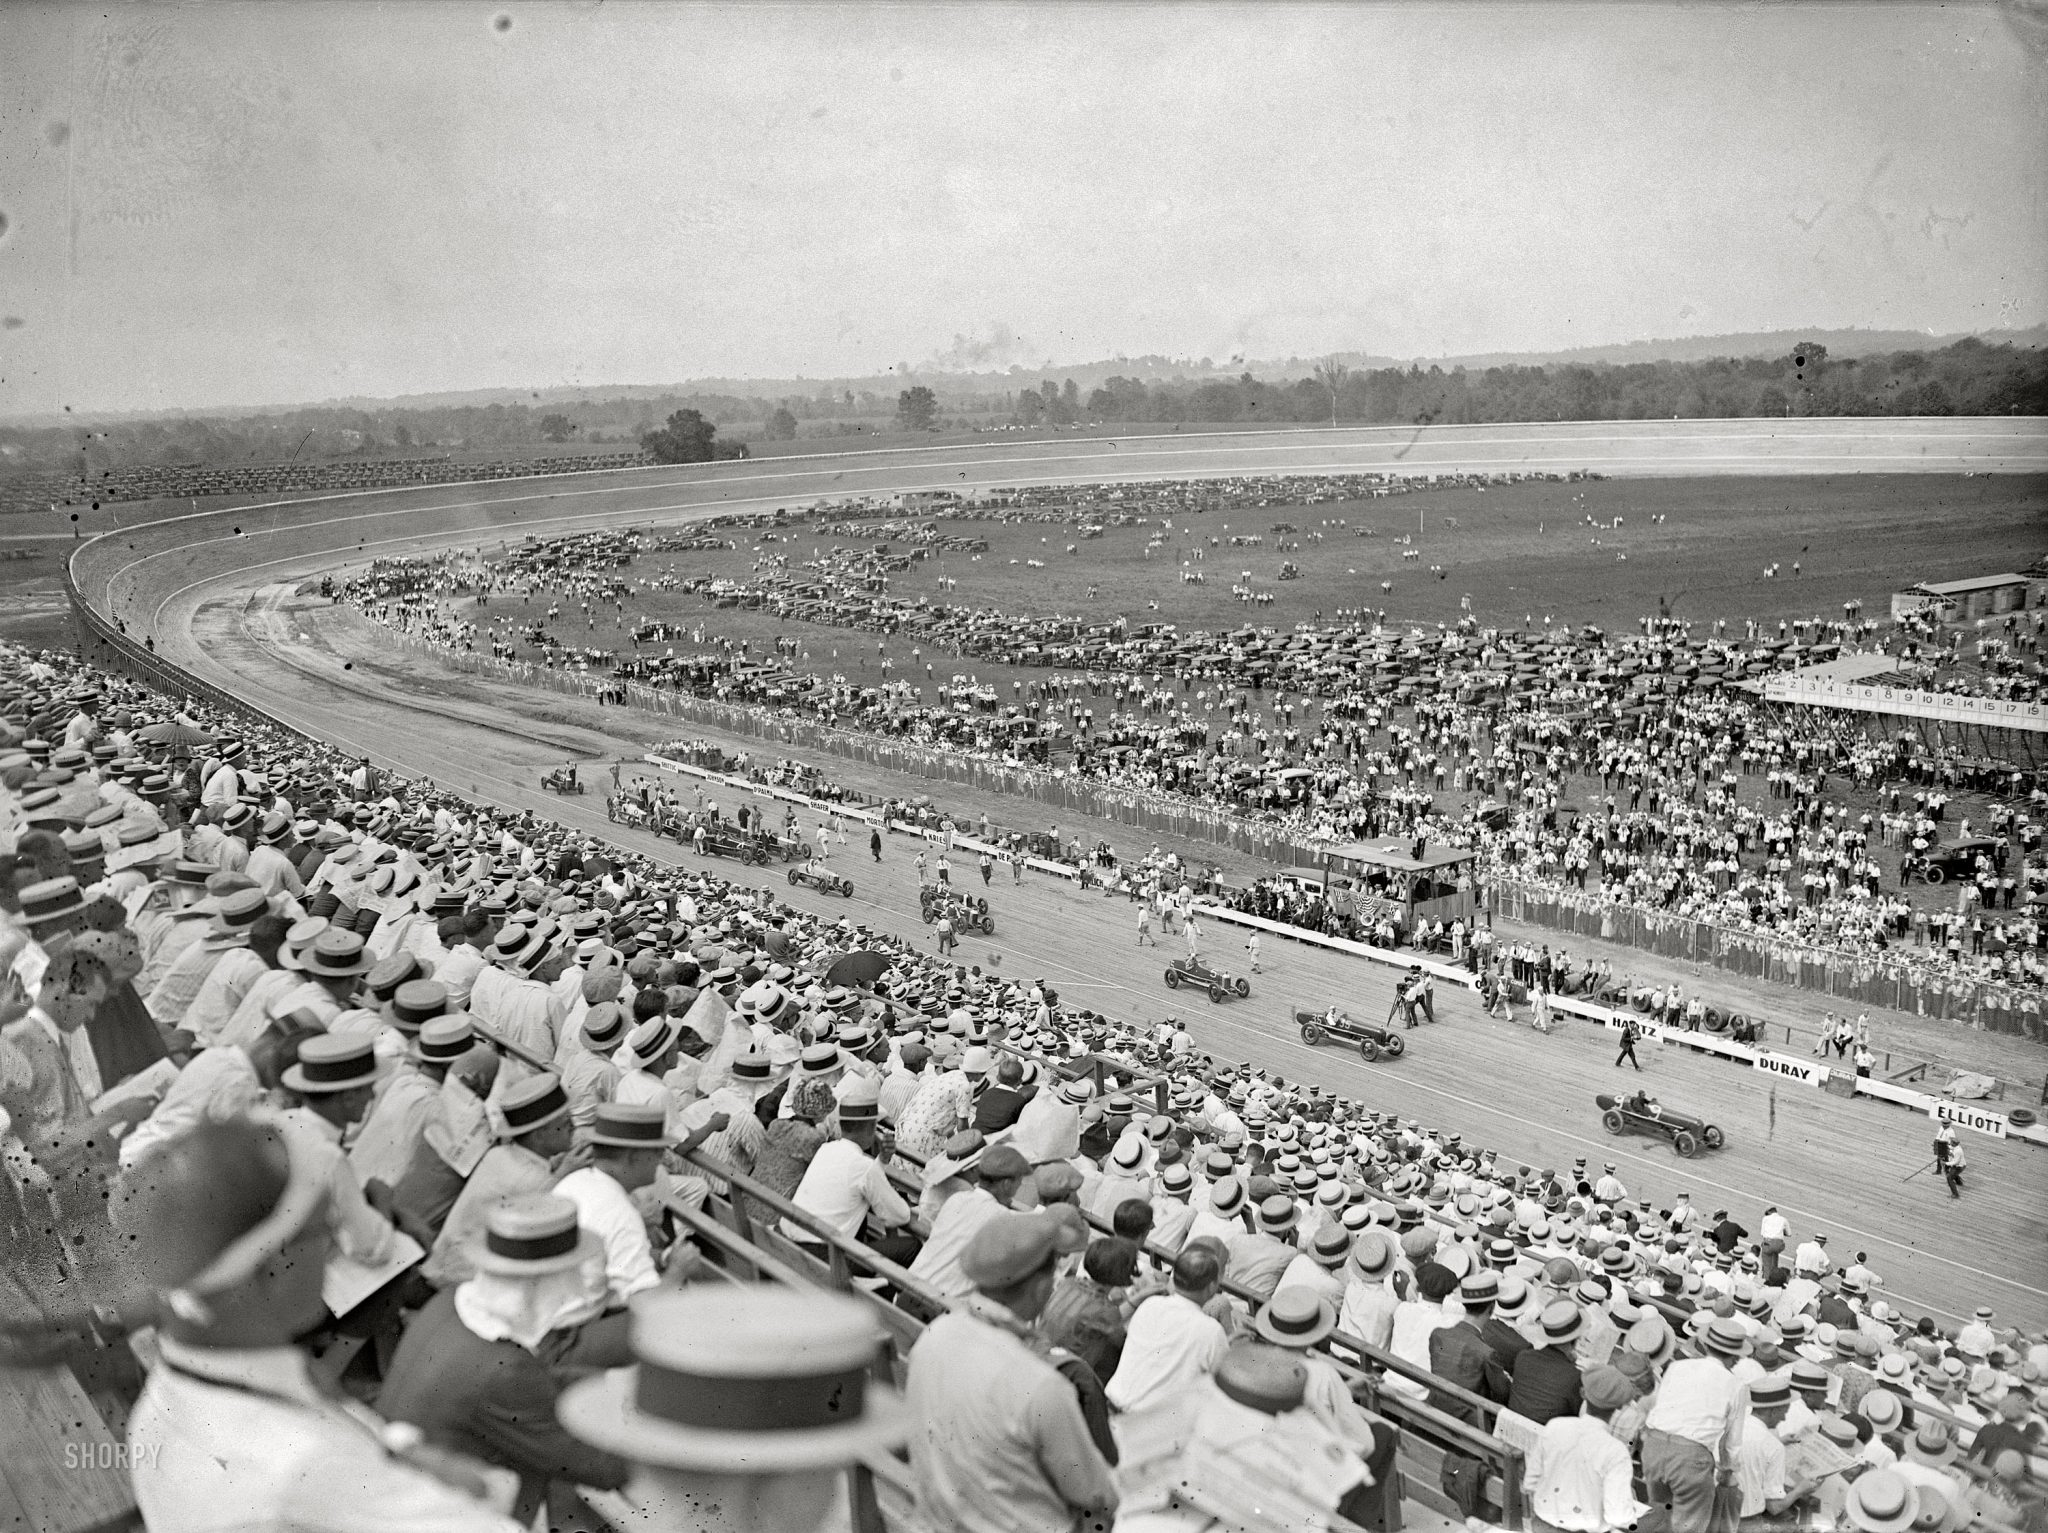 Board Track Racing 1925 Maryland